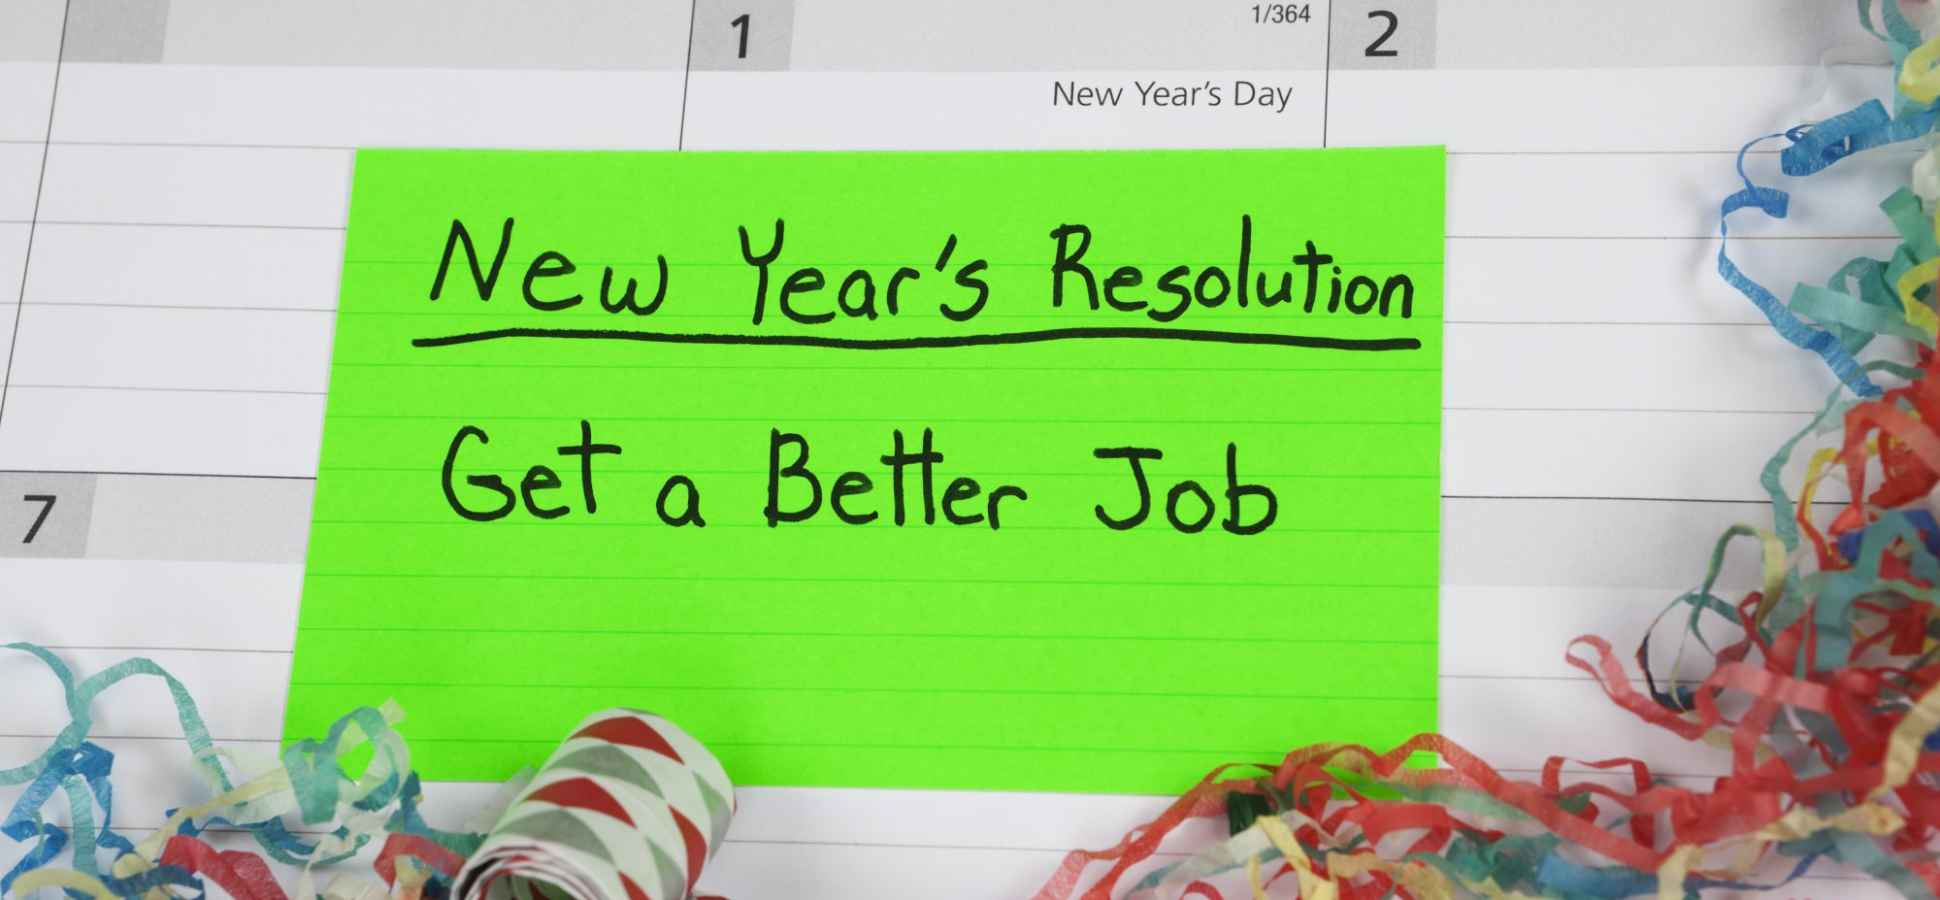 9 Reasons Why Your Best Staff Are Looking for New Job